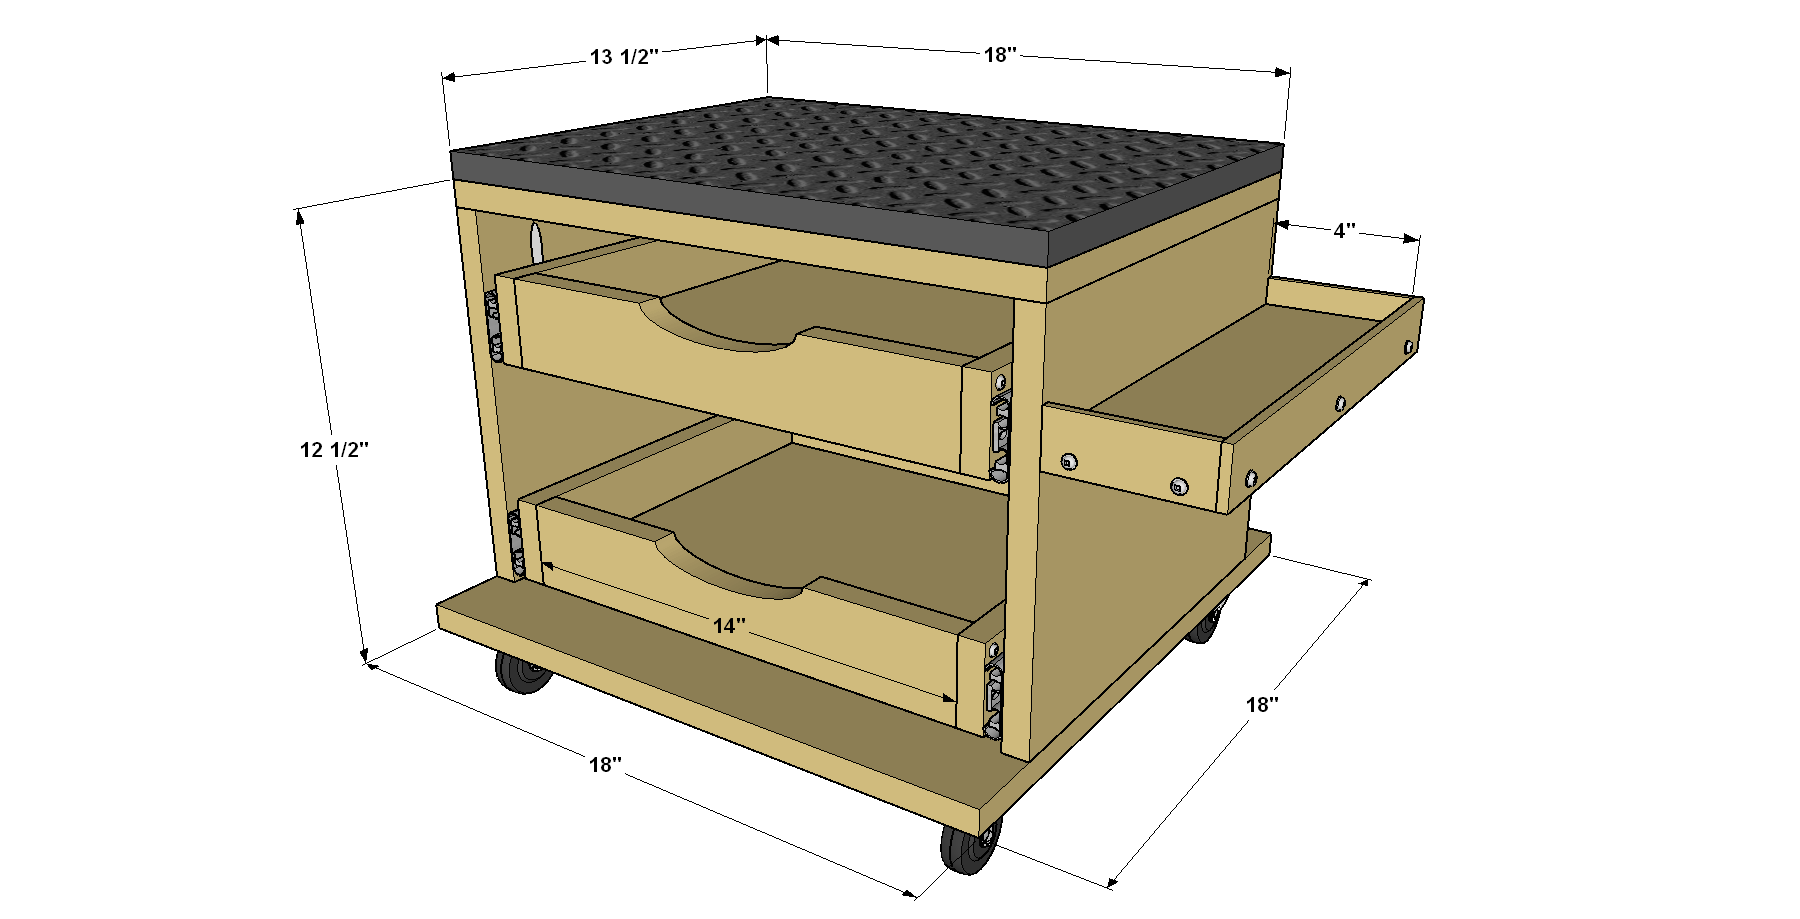 rolling-work-seat-and-tool-storage-cart-overall-with-dimensions